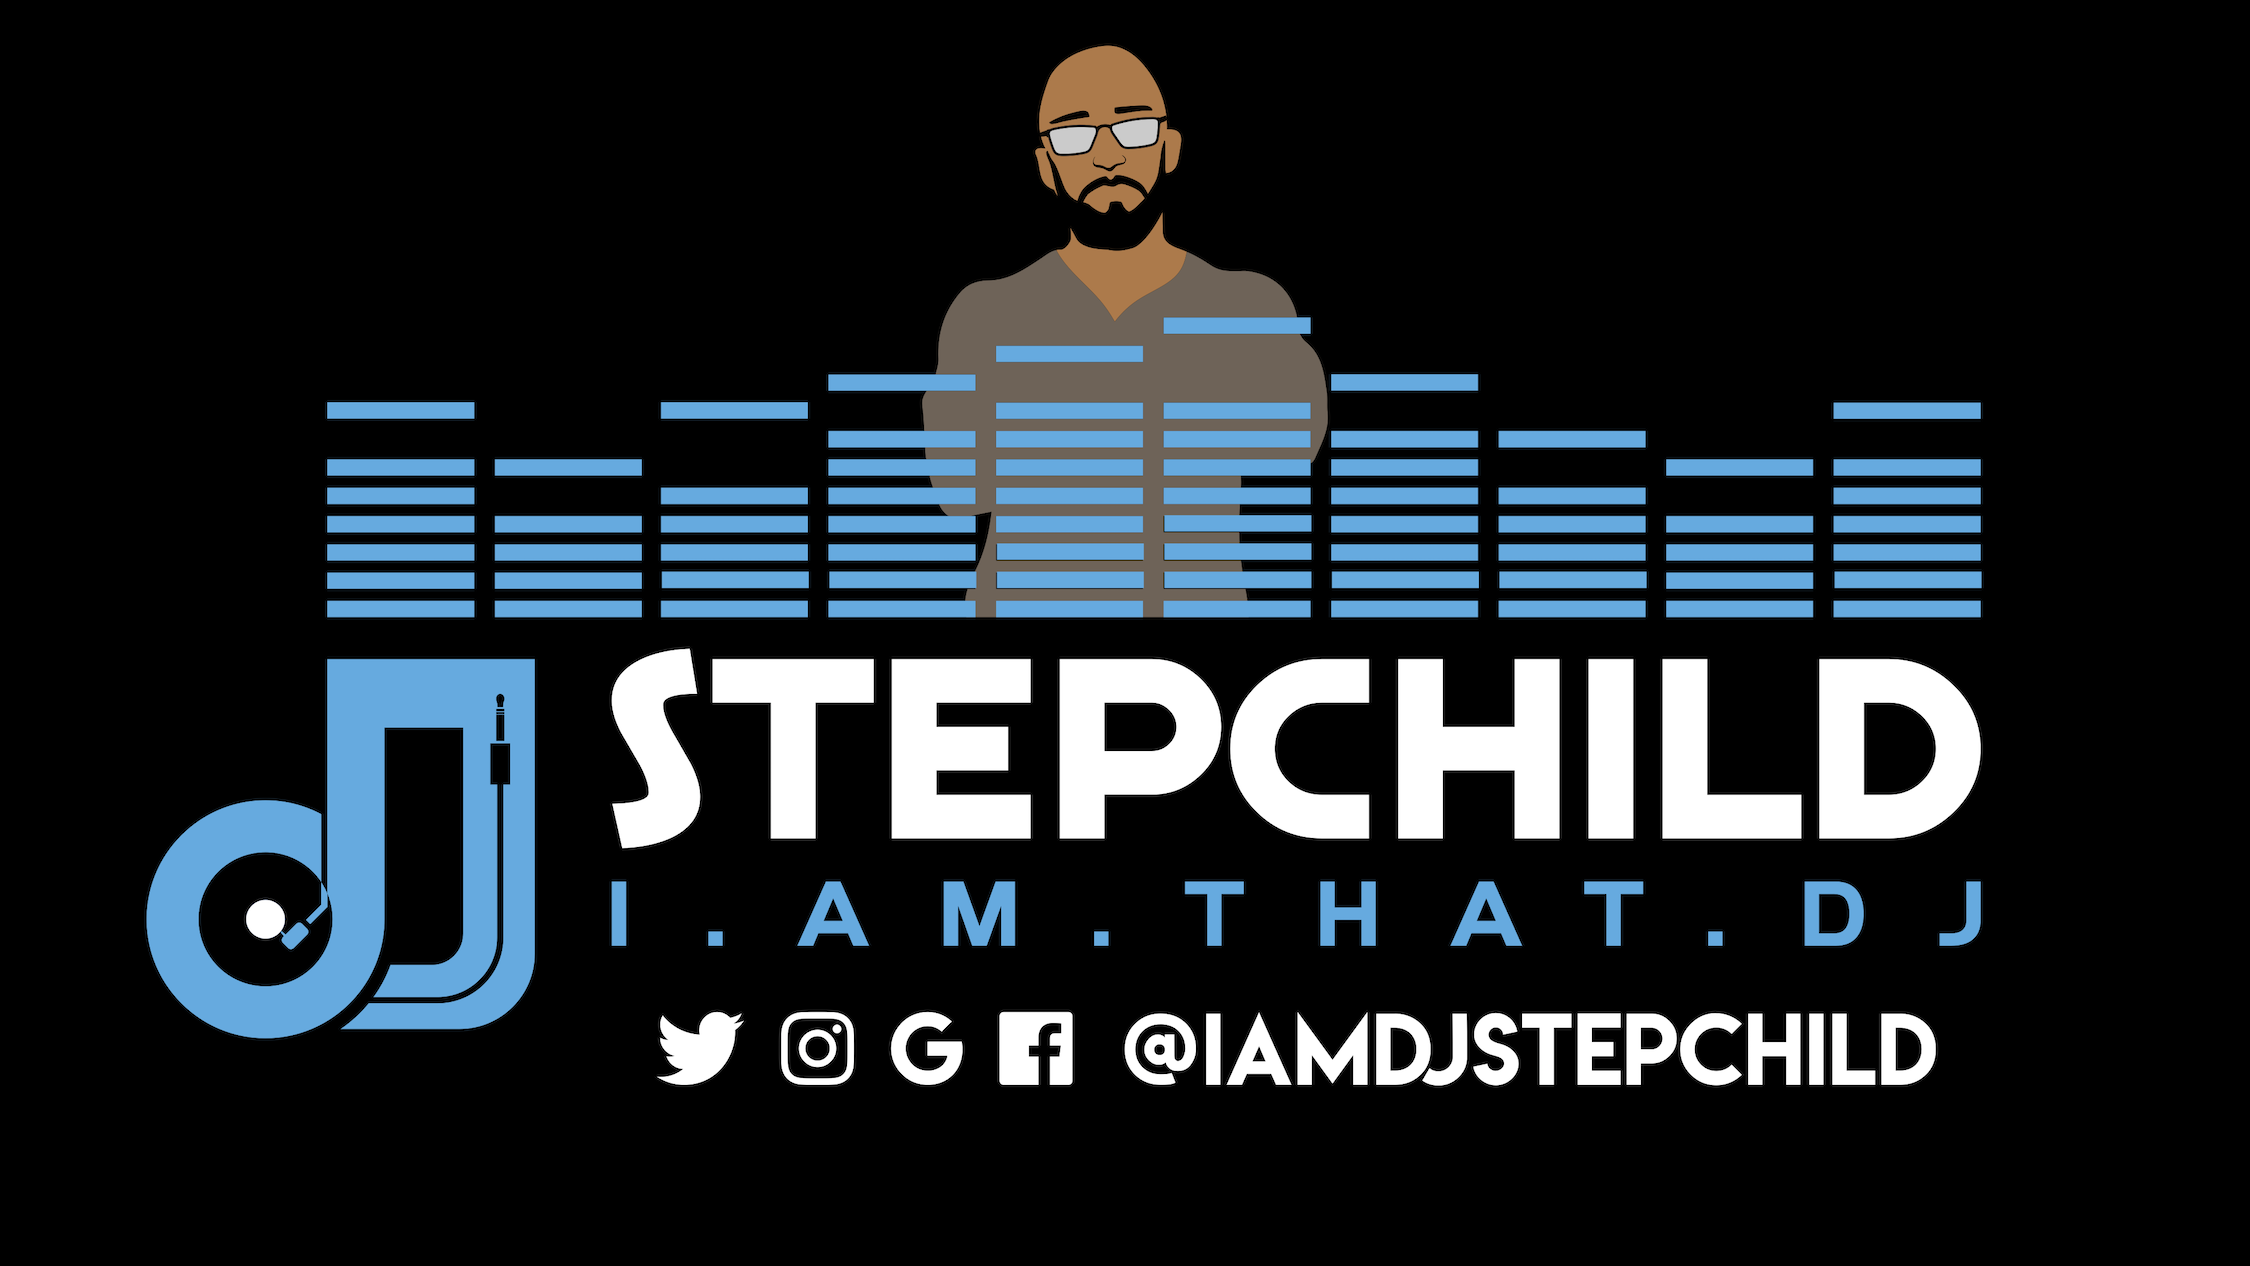 dj stepchild updated